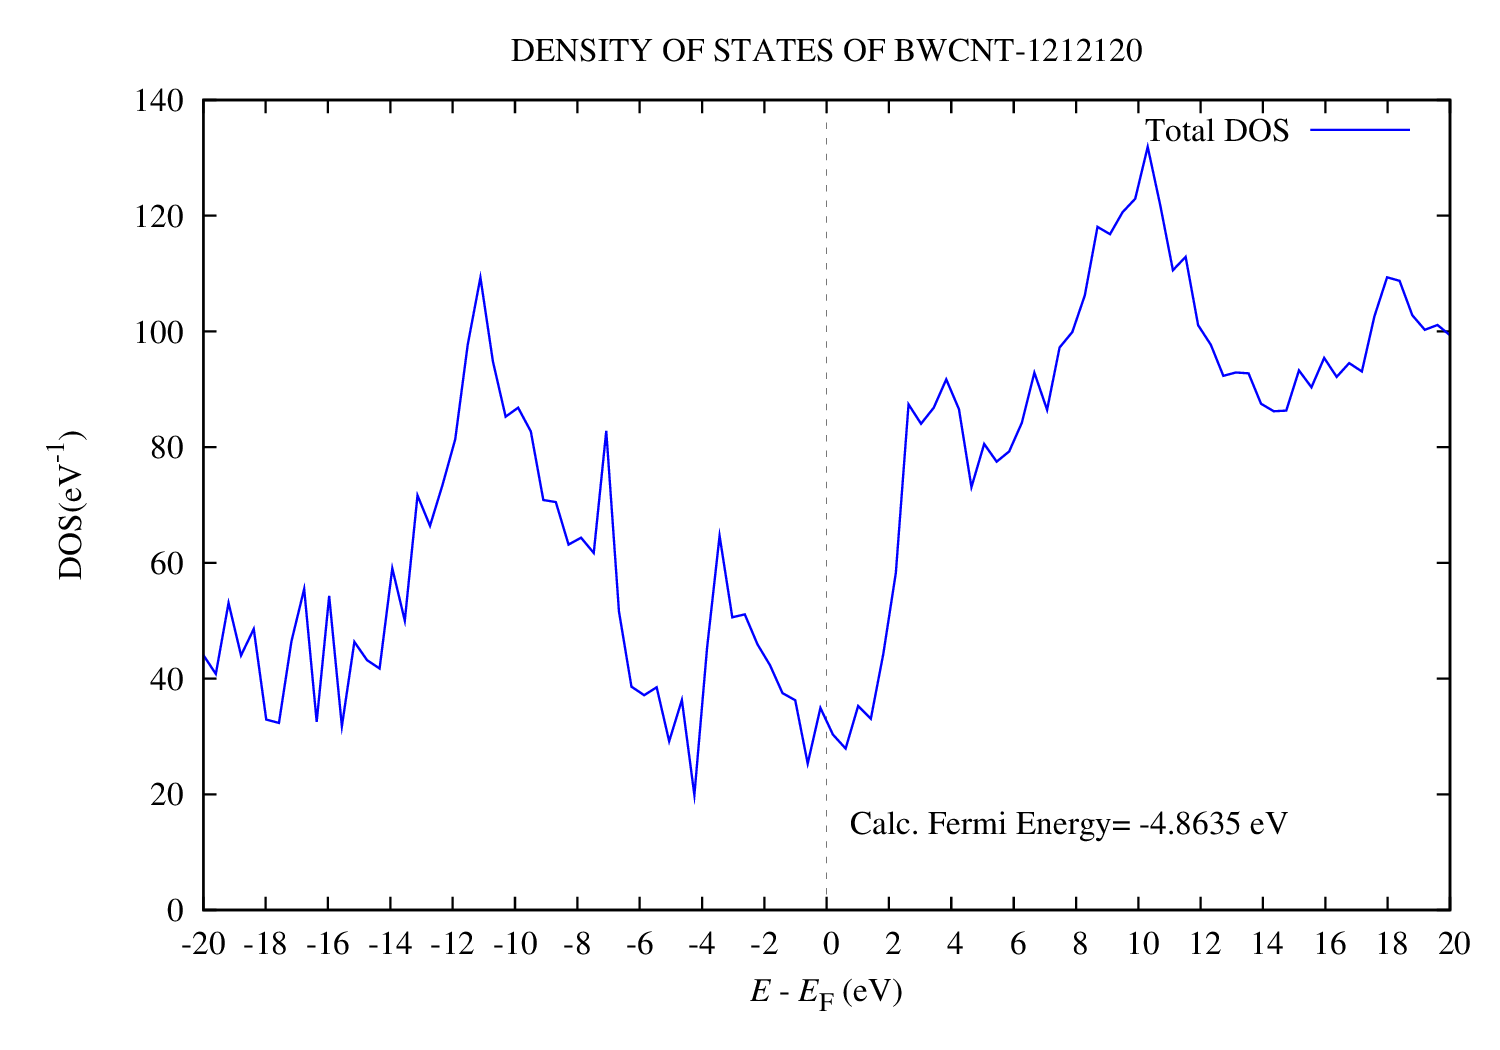 Bwcnt 1212120